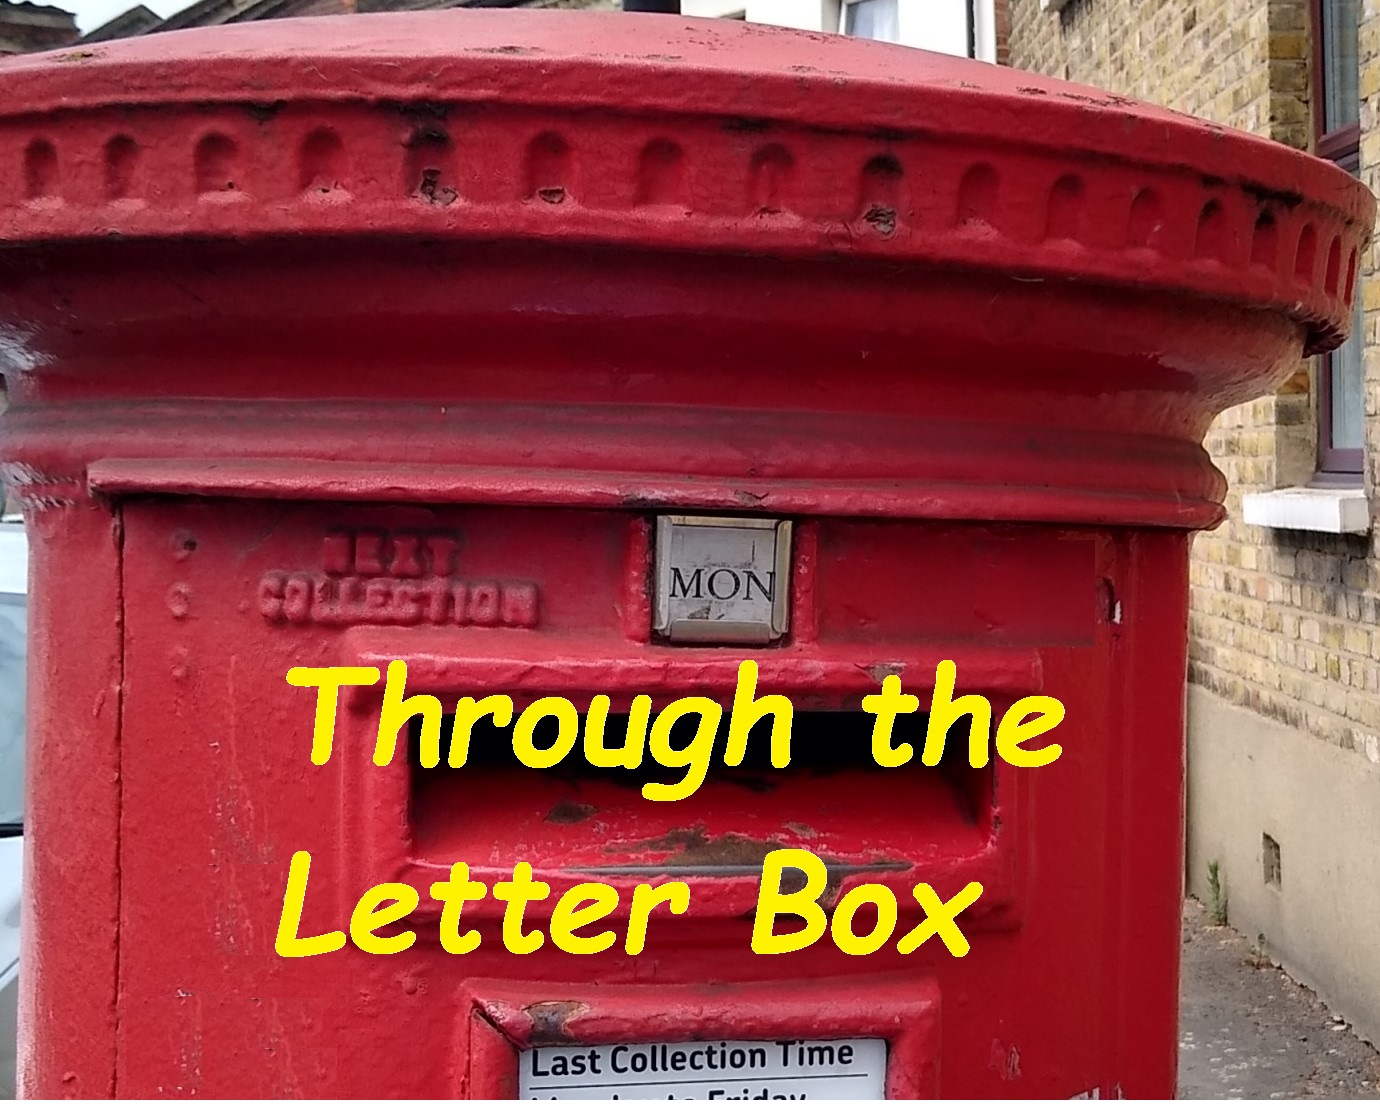 Through the Letter Box